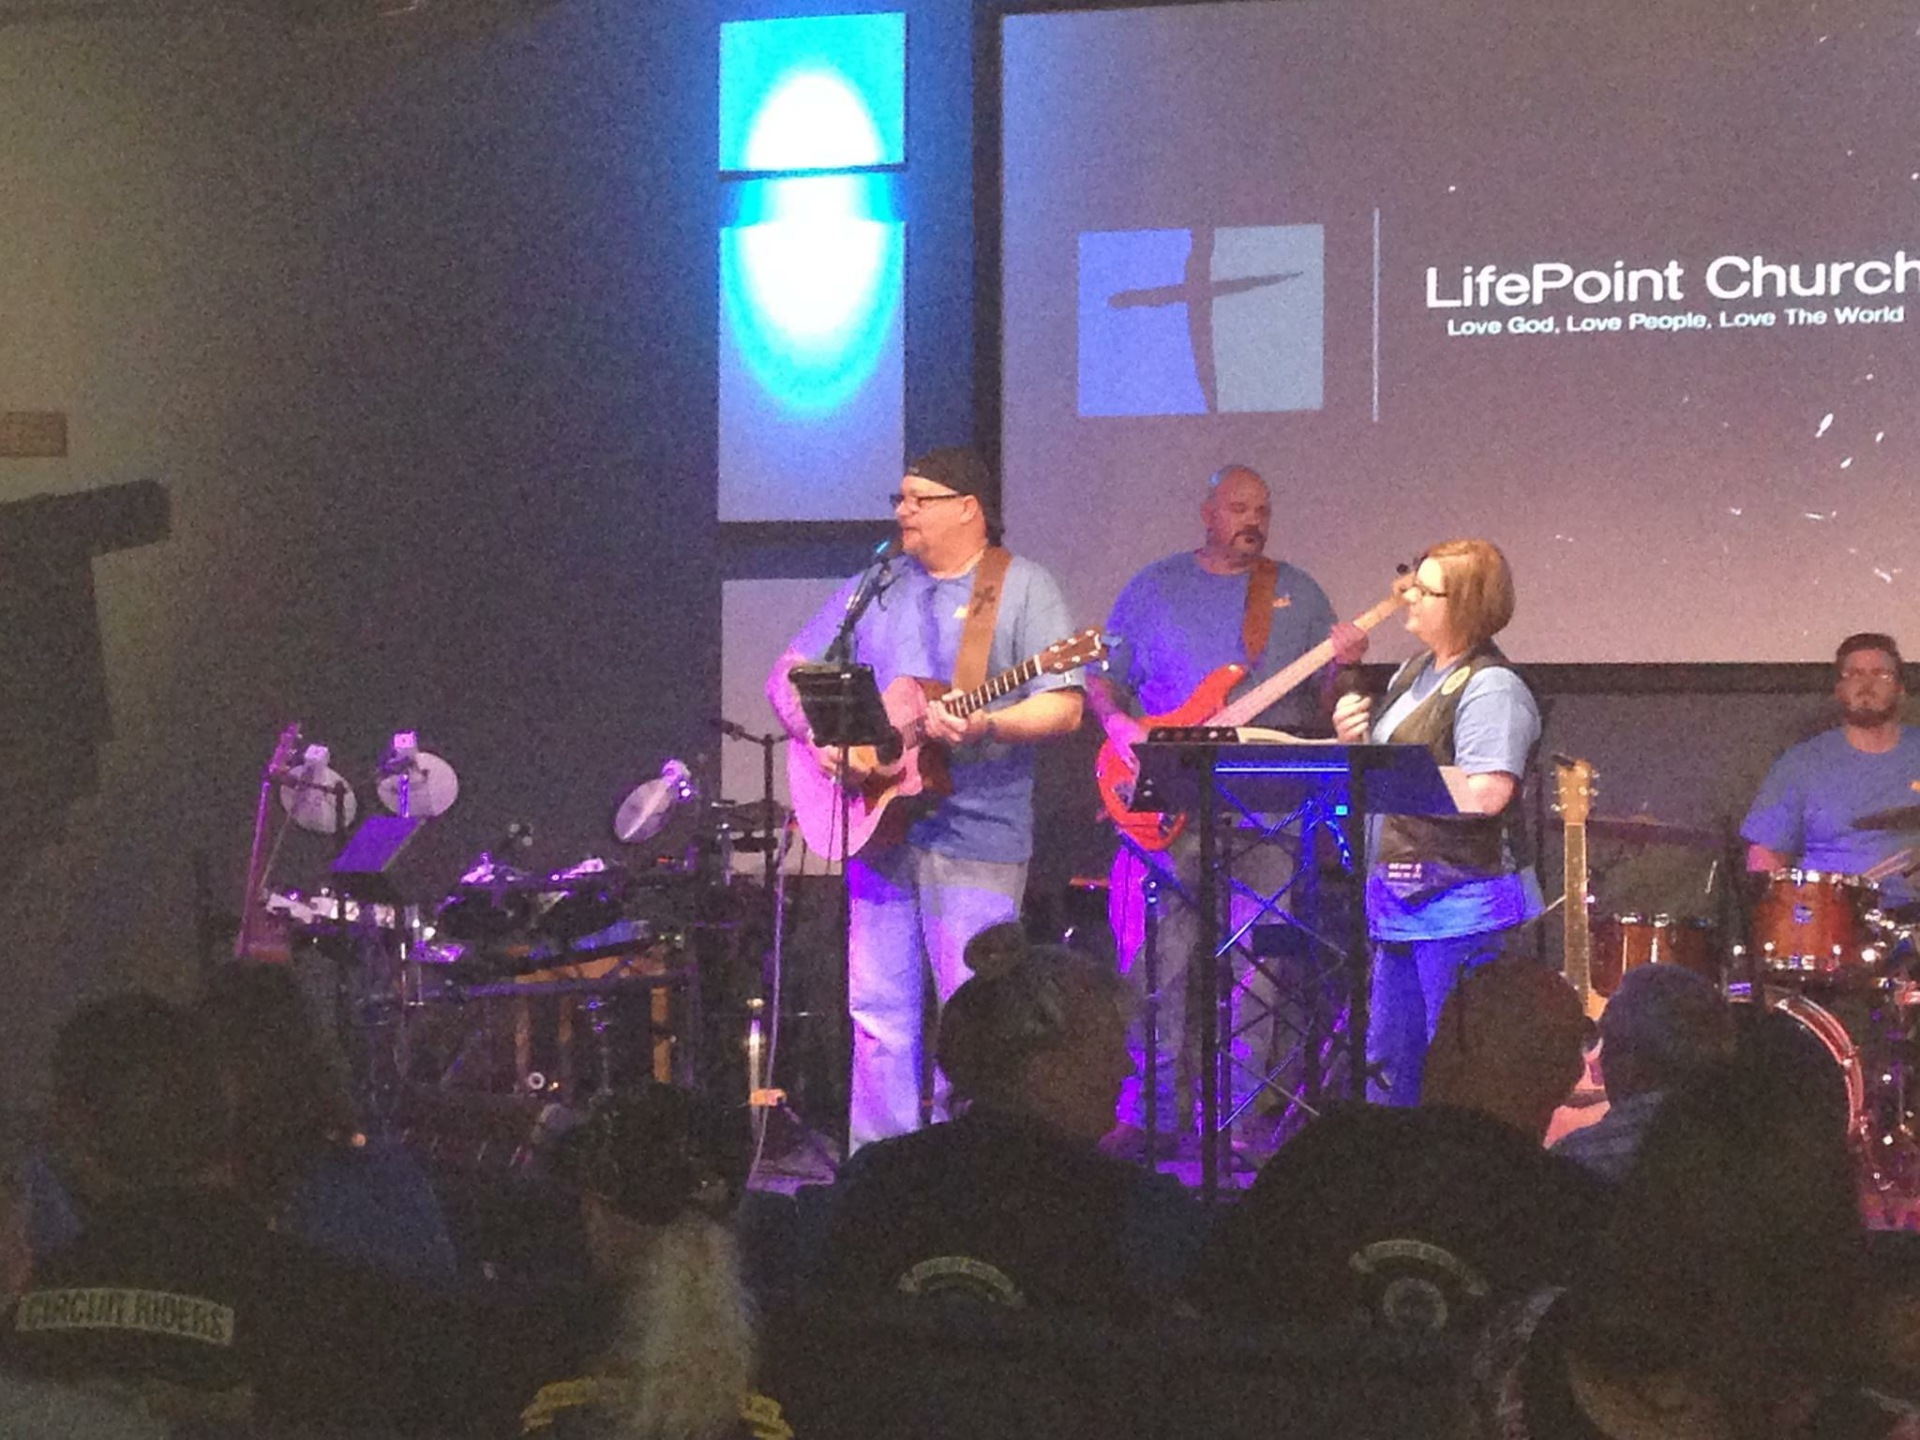 Leading Worship at LifePoint Church for Bikers Friday Night In The Light!